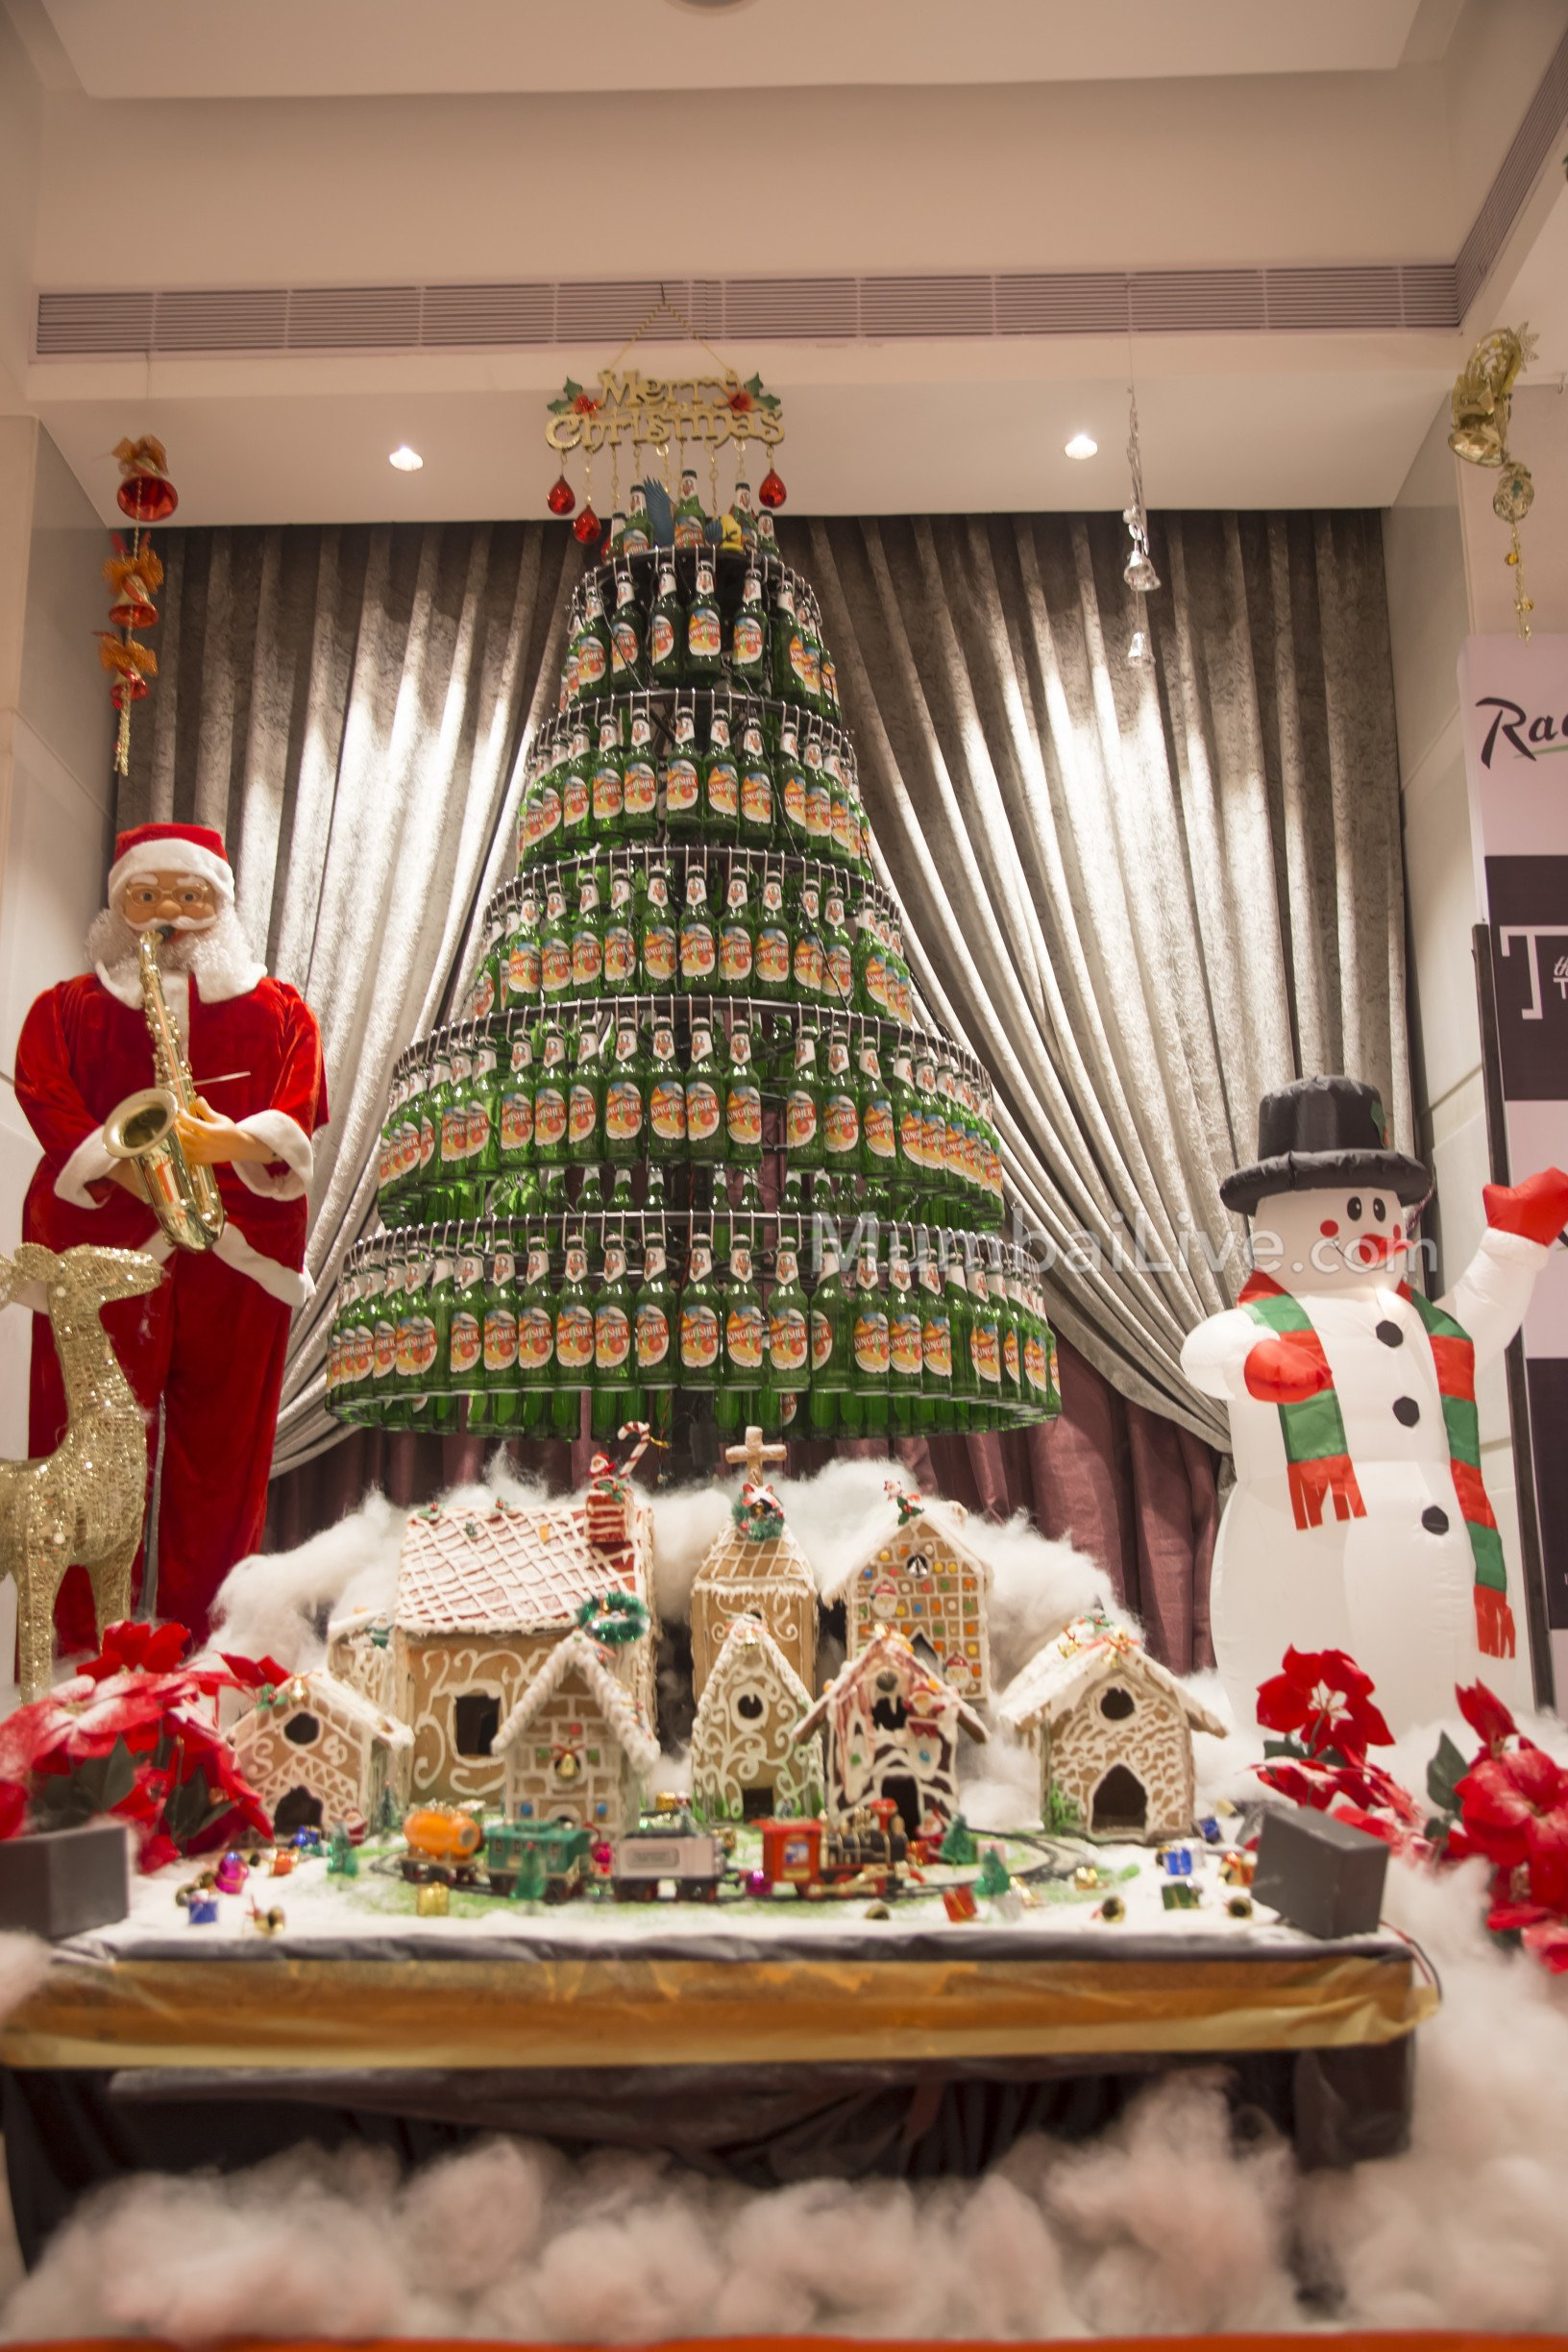 Radisson makes a mark in Mumbai with festive season offerings